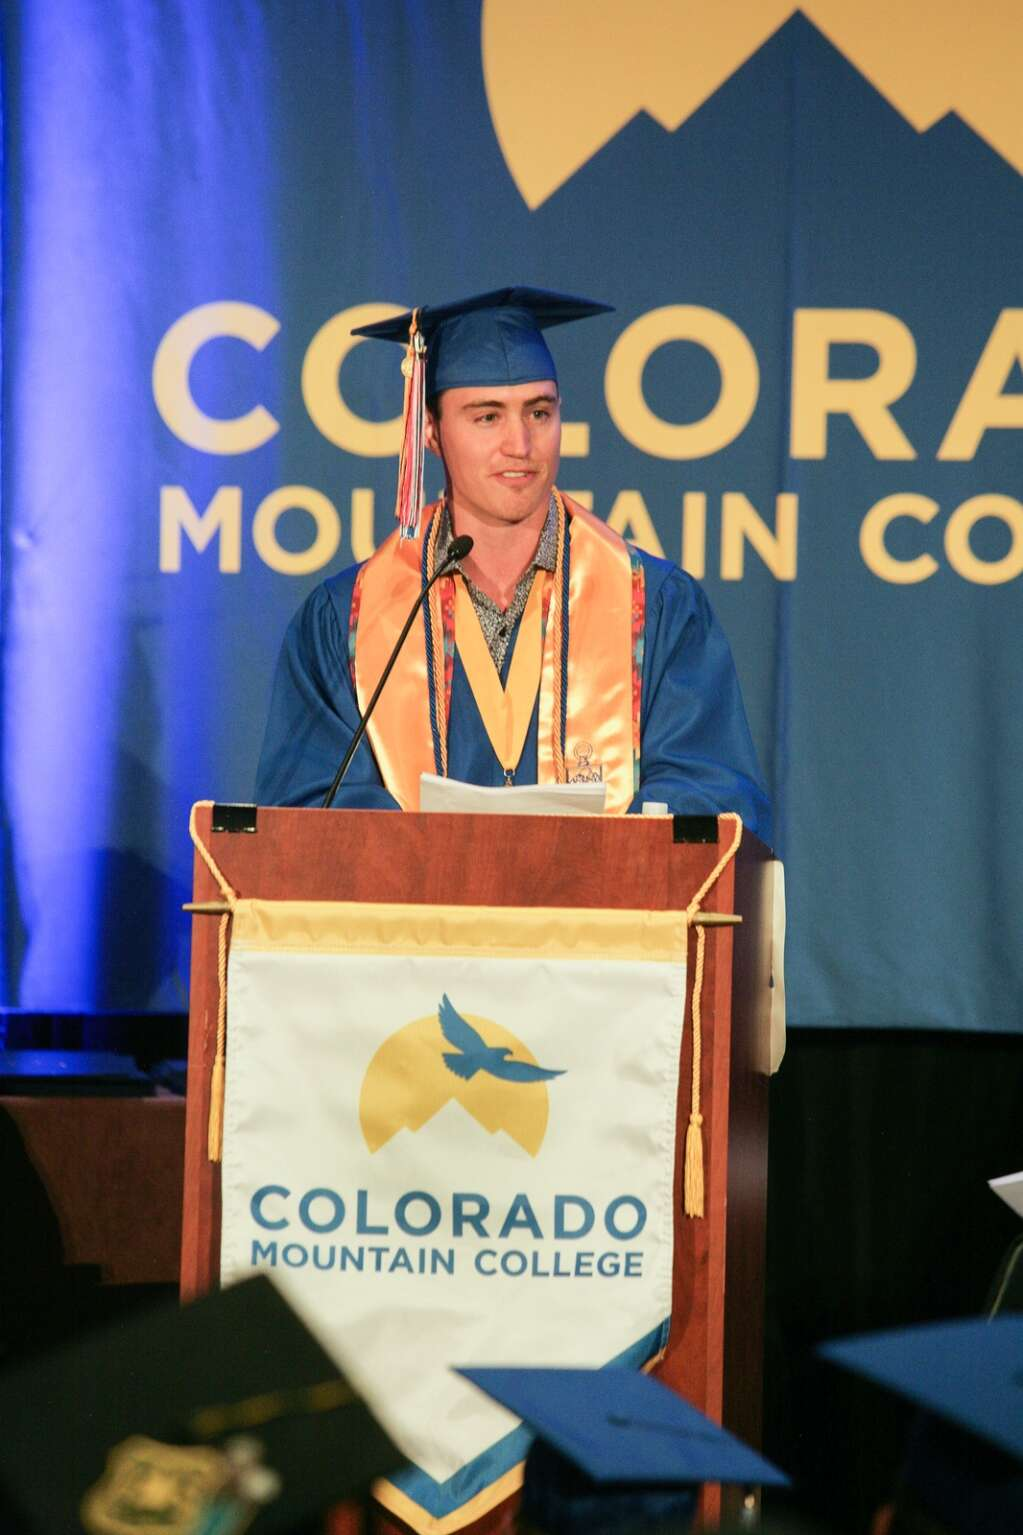 Pike James Wipperfurth speaks at the CMC Graduation Ceremony in Steamboat Springs, Colorado on May 8. (Photo by David Watson)